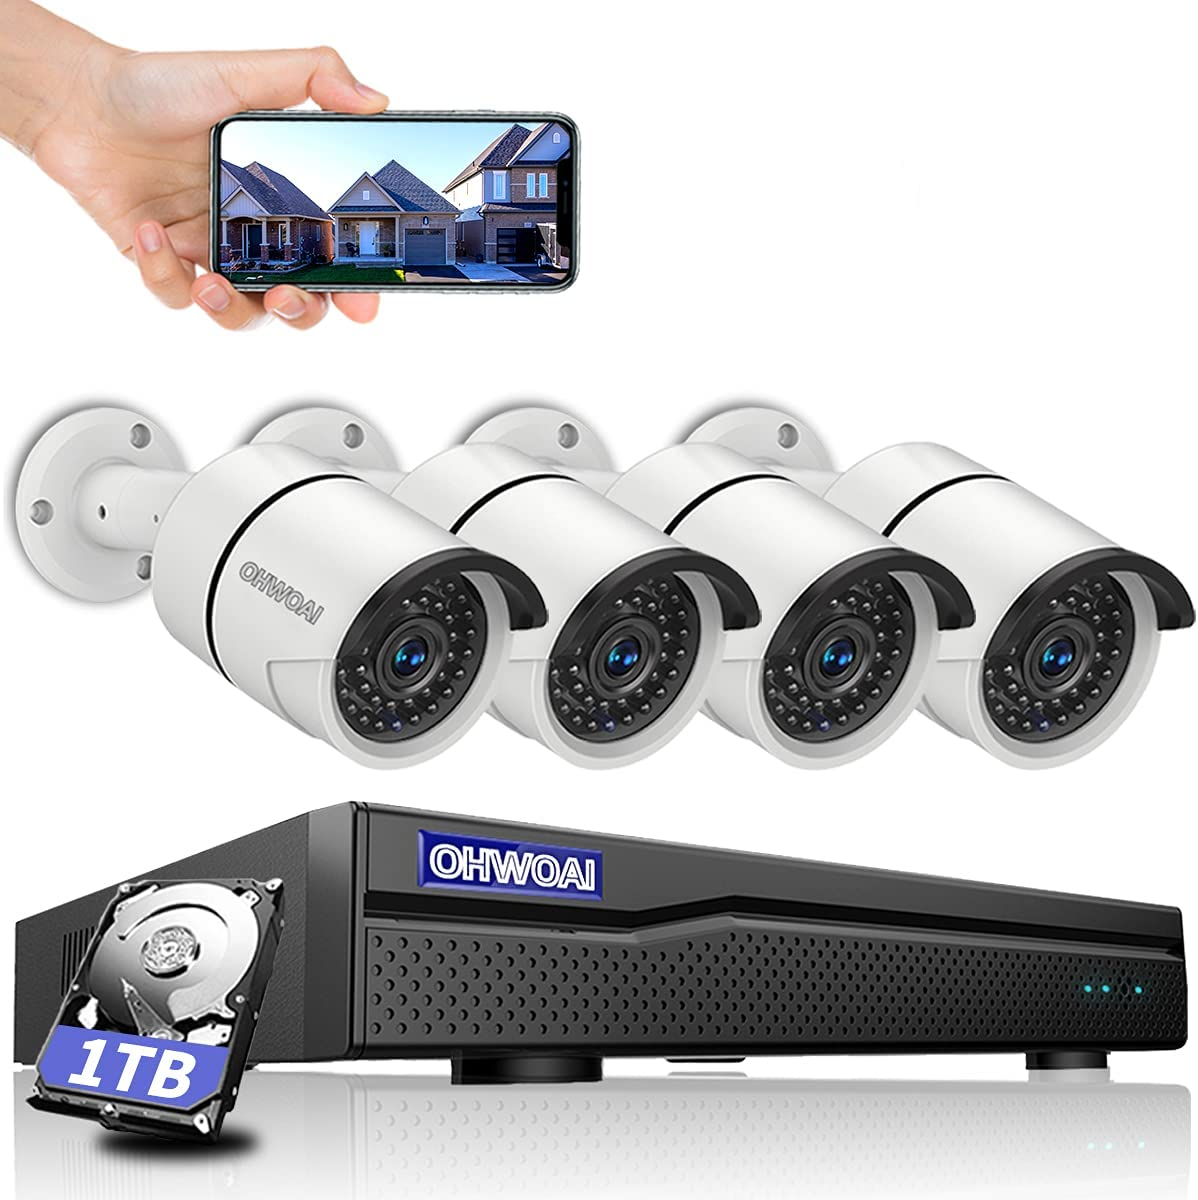 【3K 5.0MP & 30 Days Storage】 POE Security Camera System,8 Channel Poe NVR,4pcs 5.0MP Poe IP Cameras,OHWOAI Home Video Surveillance POE Wired Indoor&Outdoor System with 1TB HDD,AI Detection,Audio,IP67